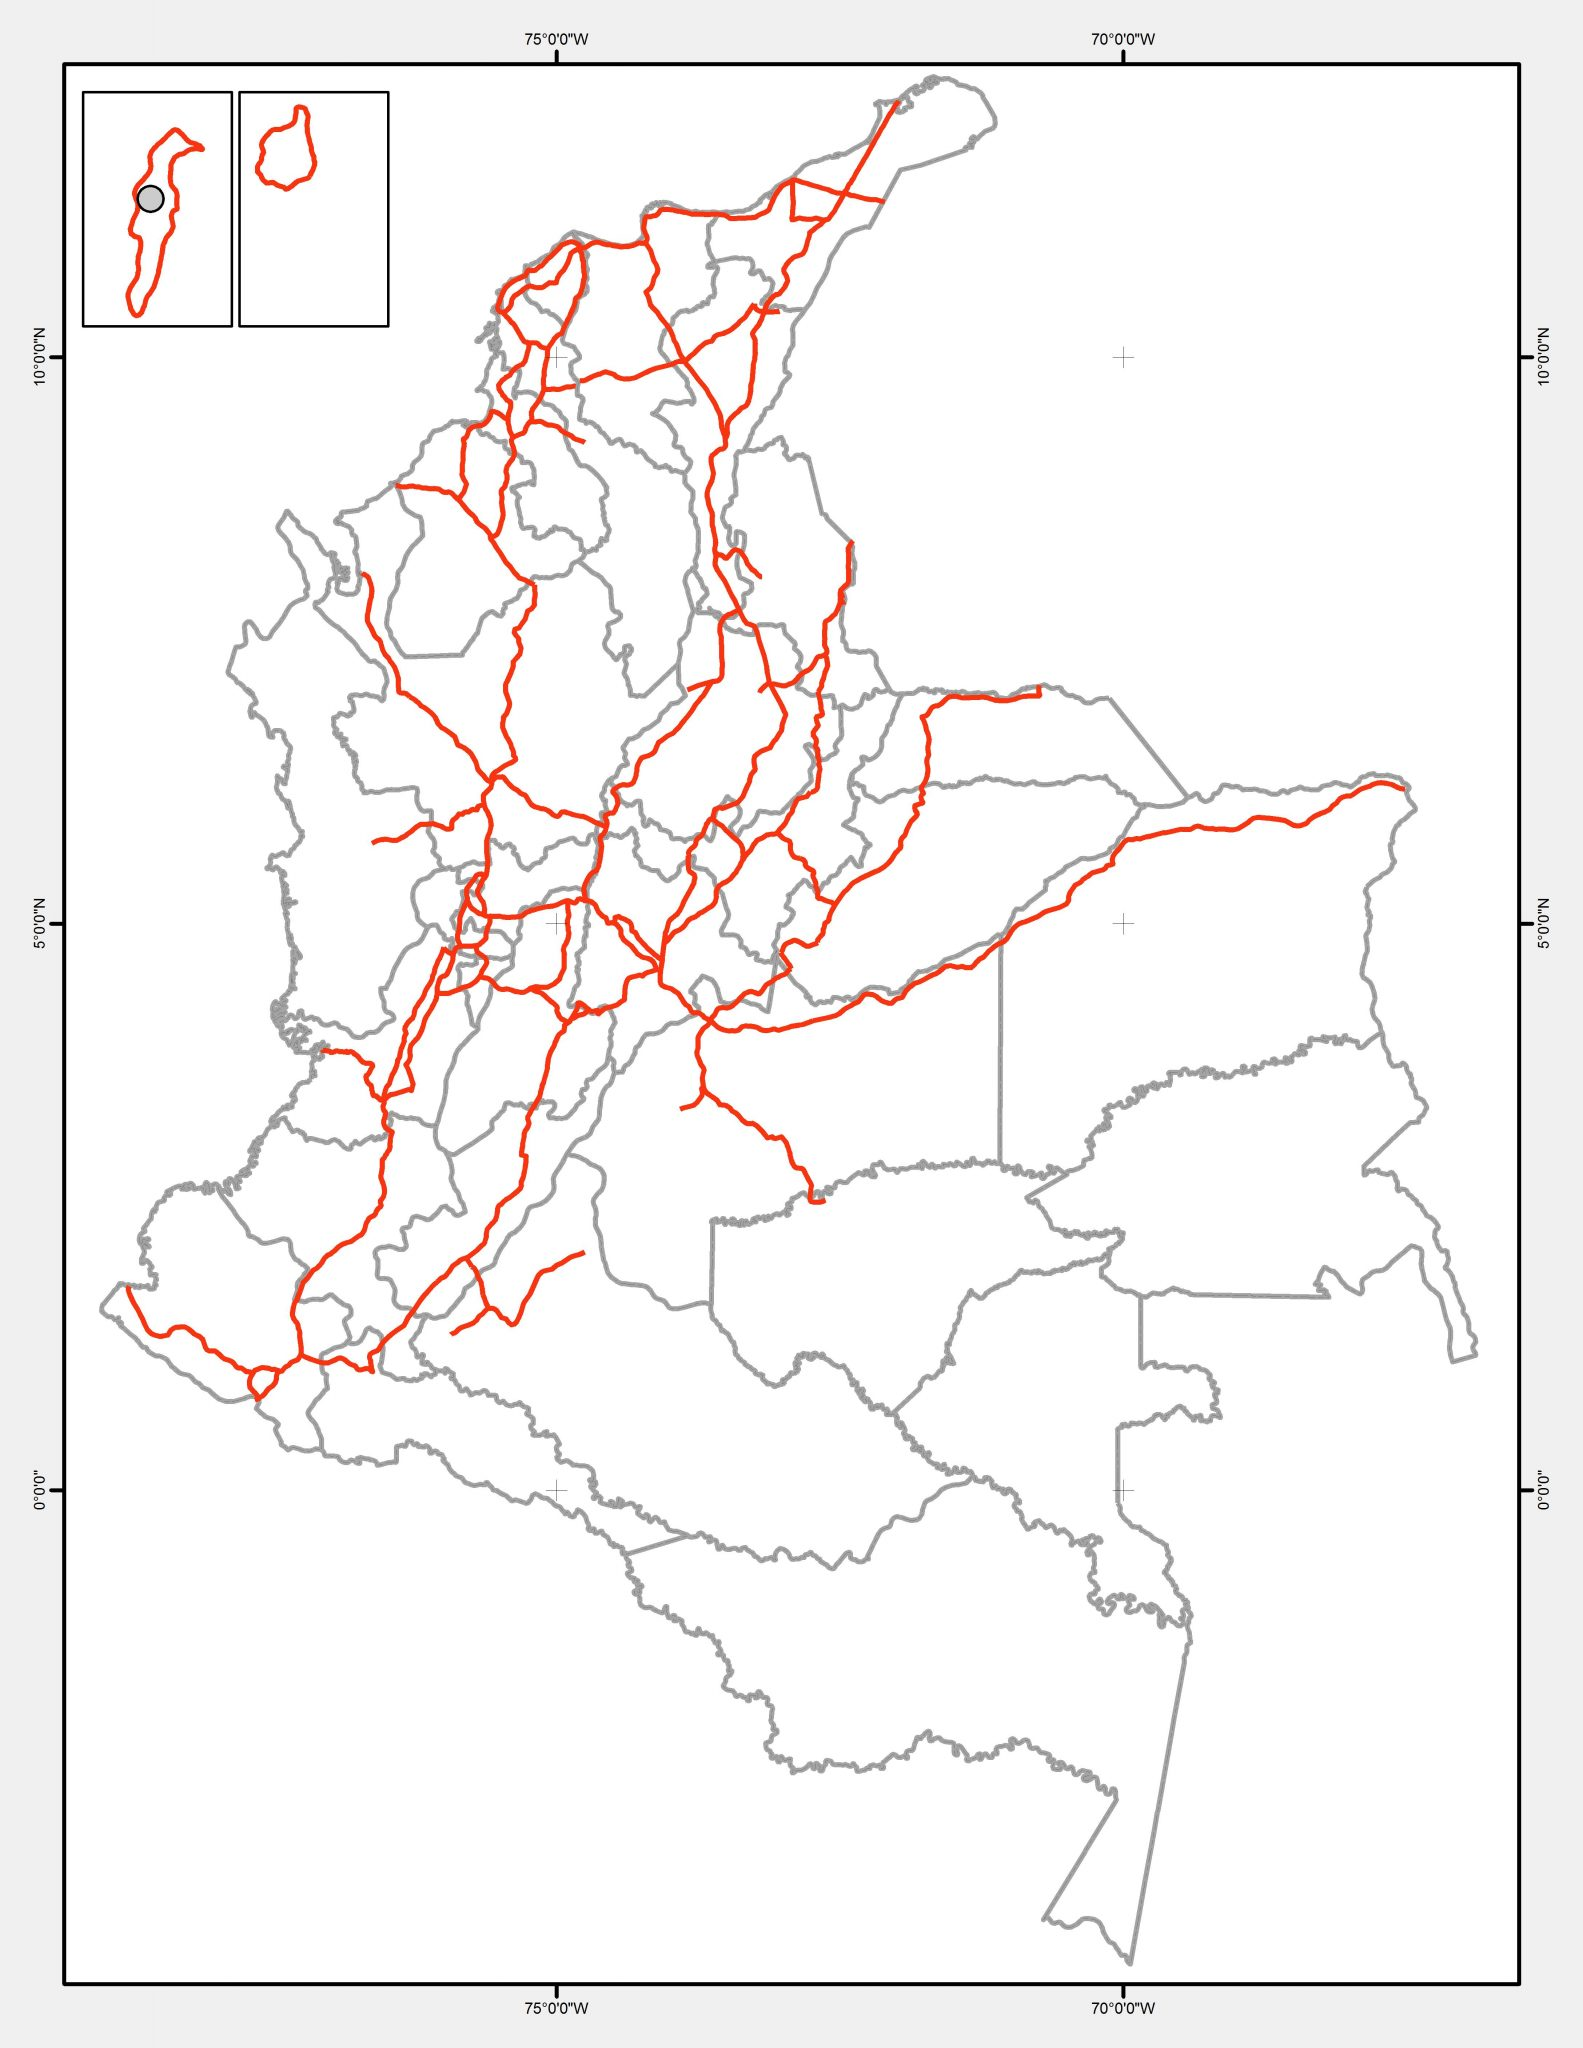 Primary and Secondary Roads. Source: Instituto Humboldt, 2011